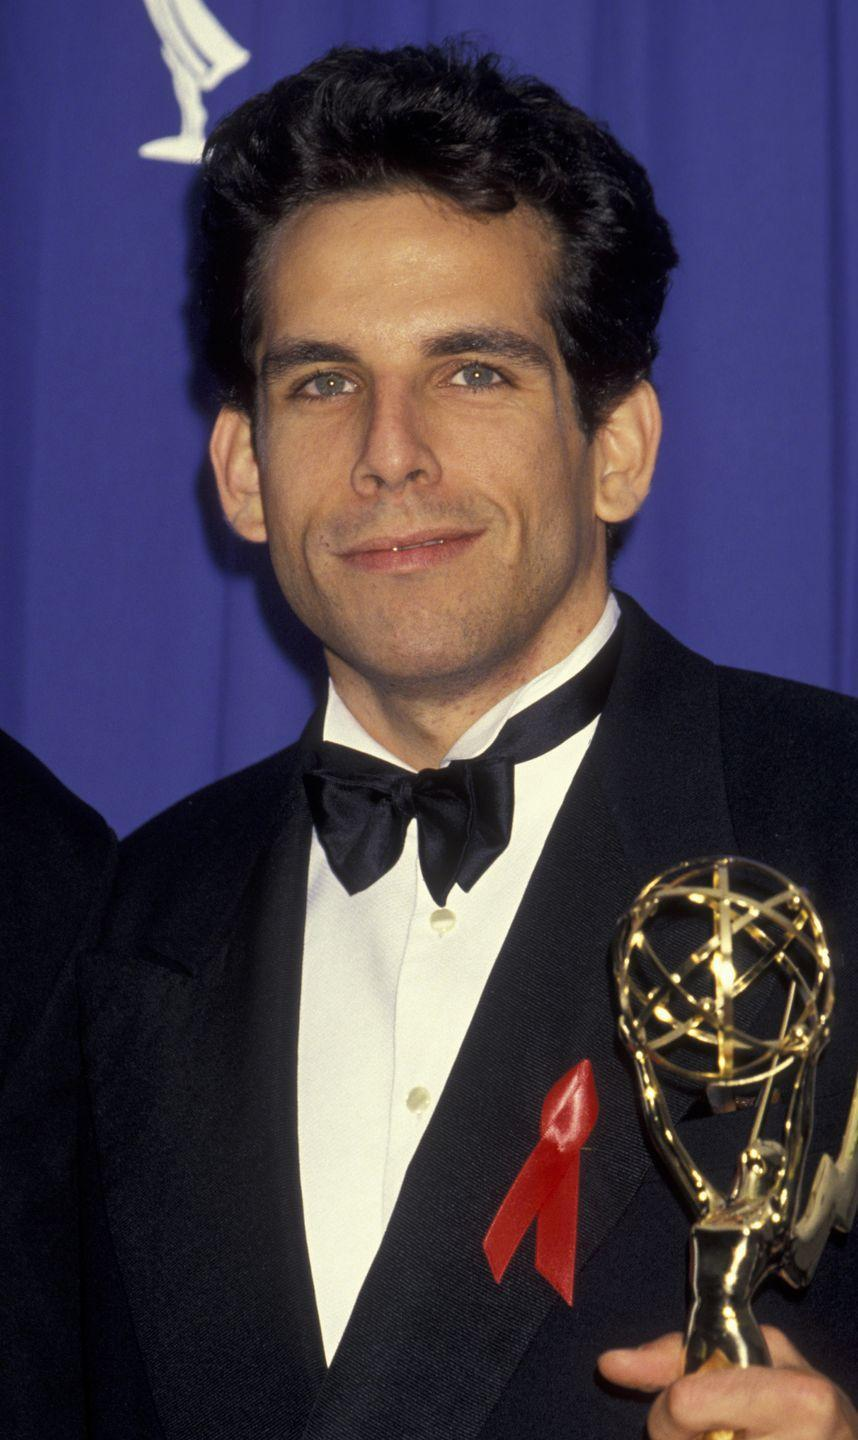 <p>Before he was a comedic film icon, Ben Stiller was just starting out in the business—with a full head of thick, dark curls. </p>